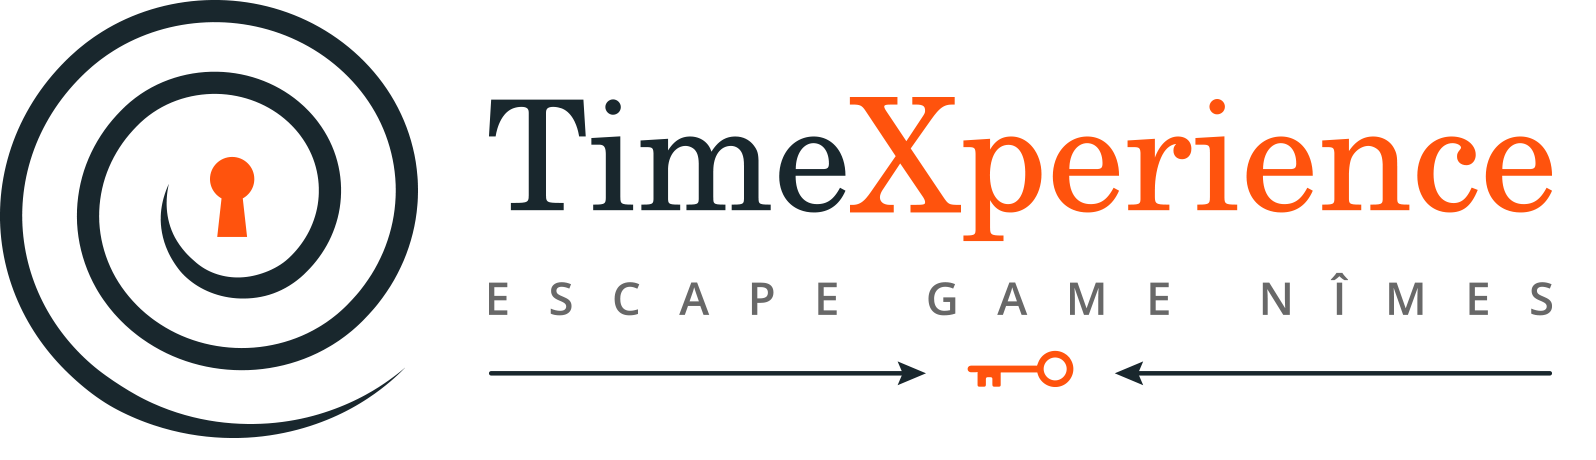 TimeXperience - Escape Game Nîmes